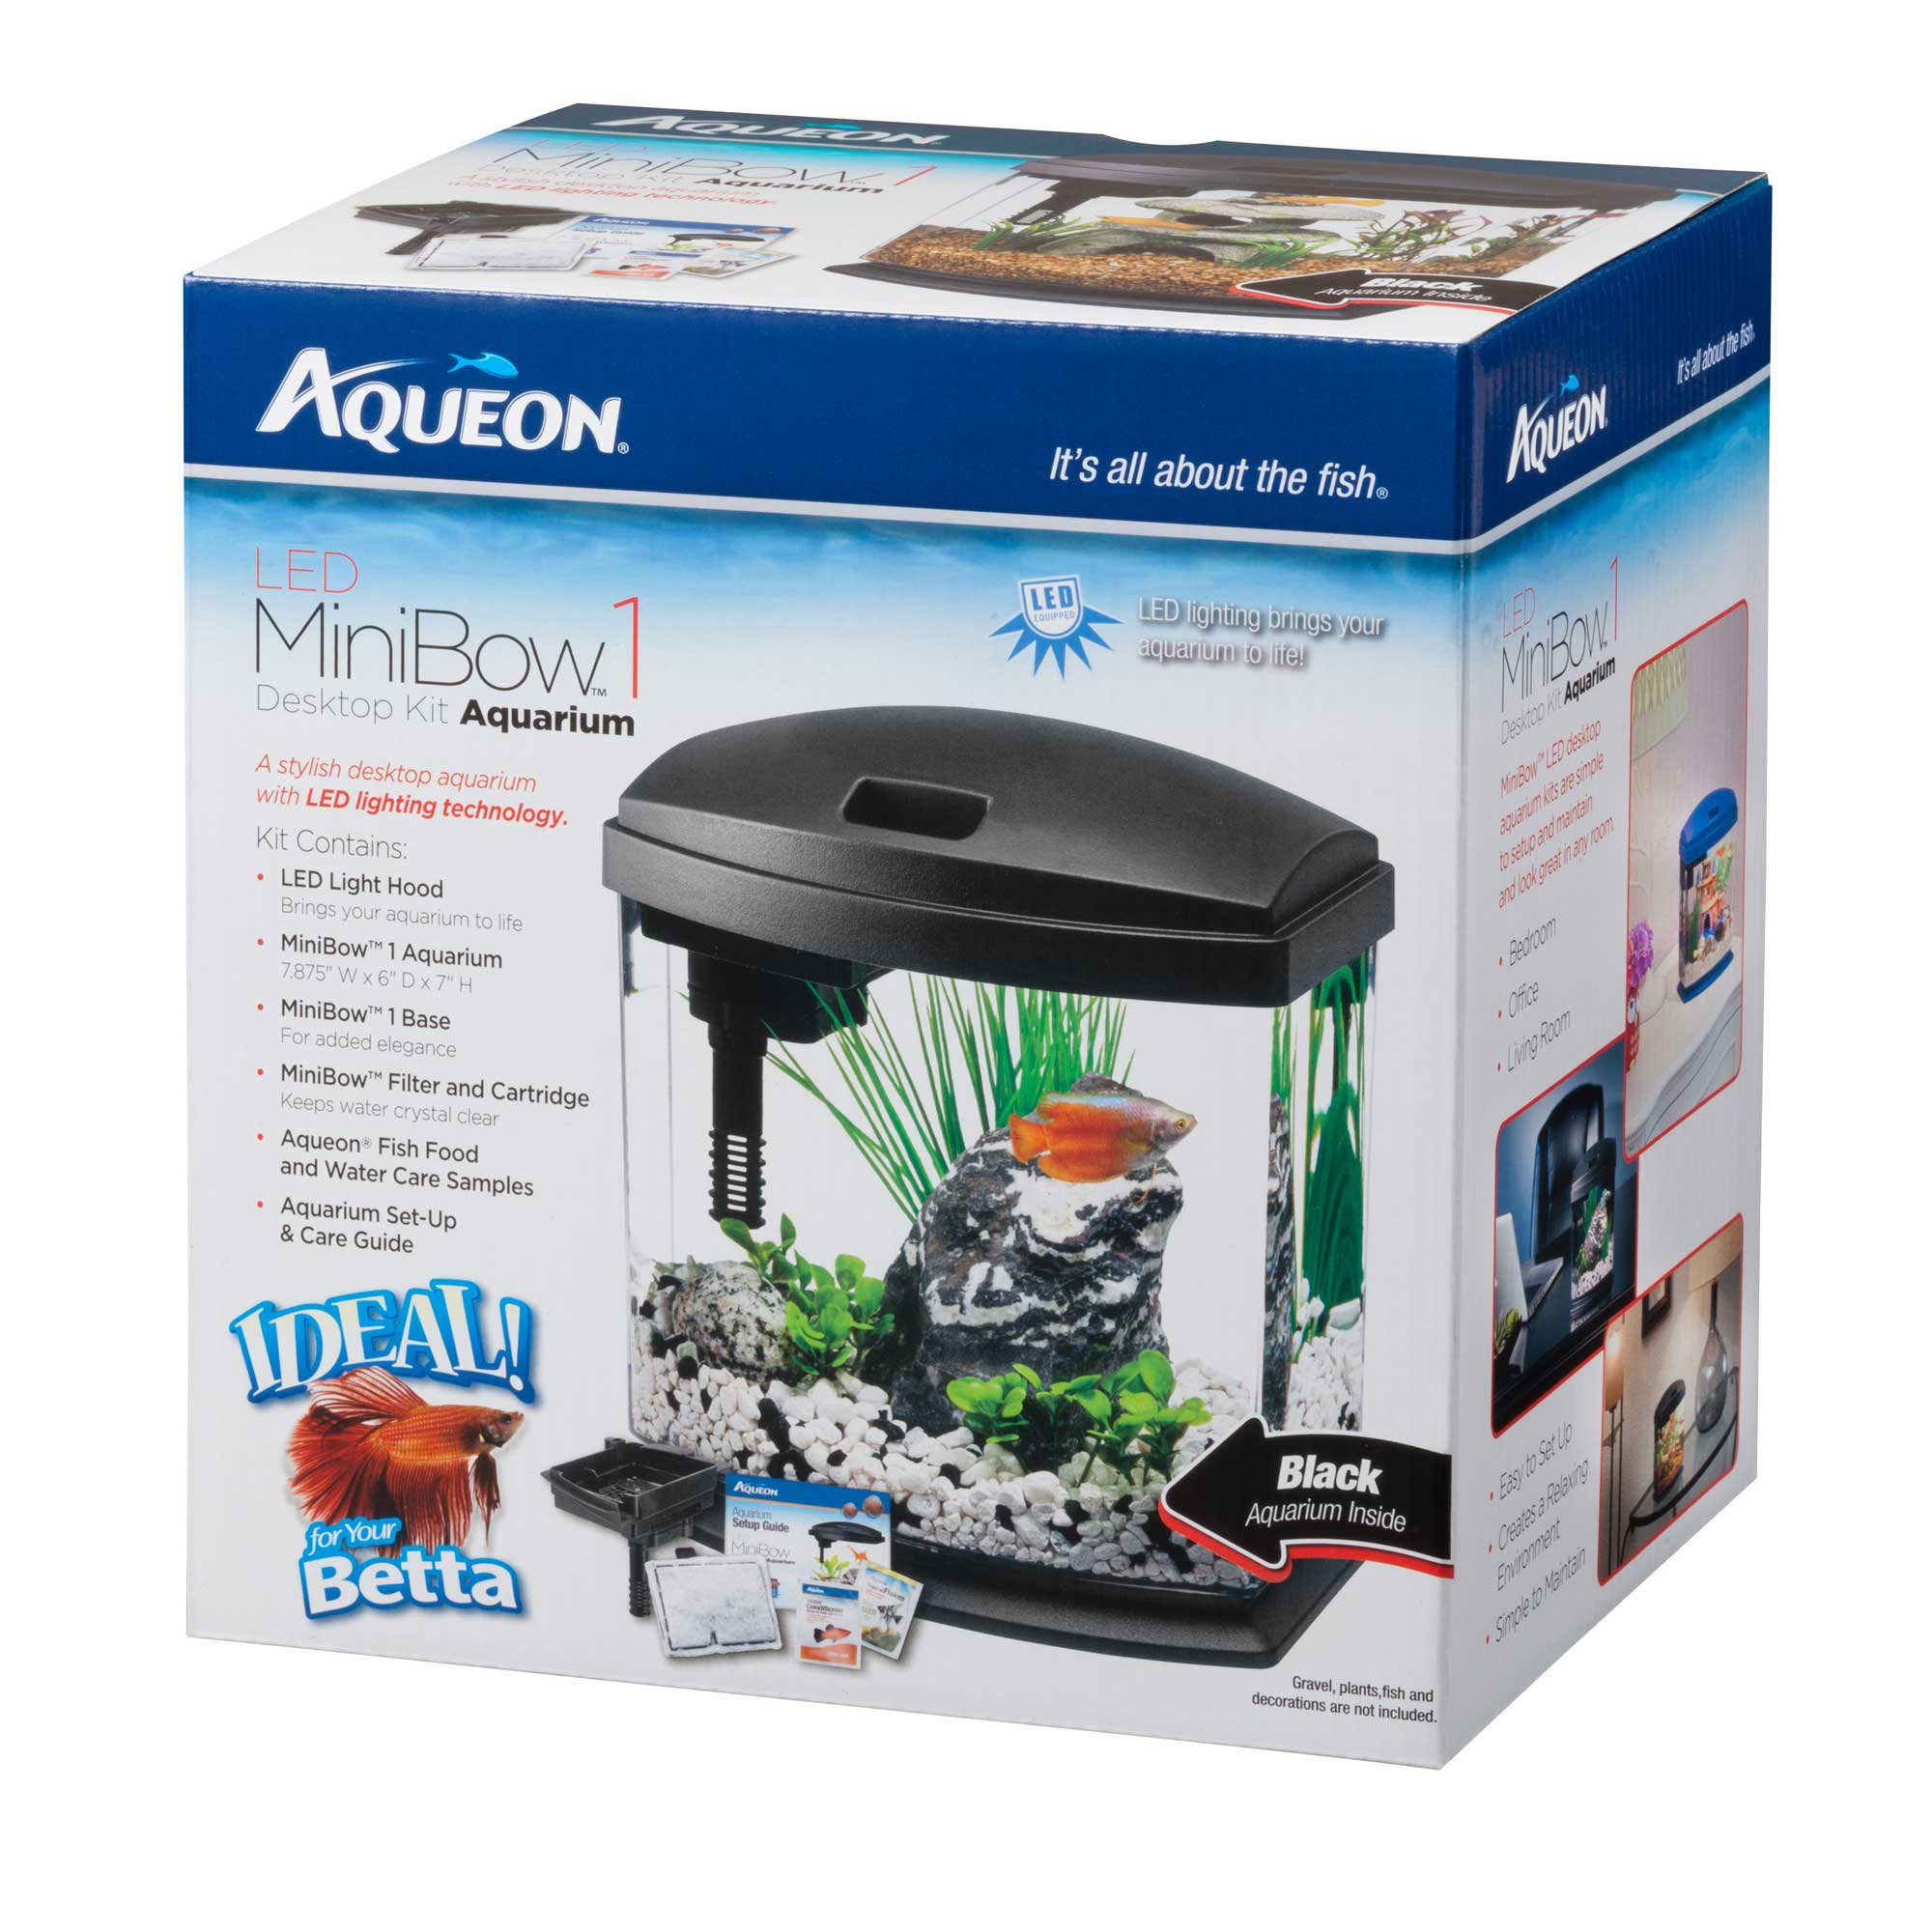 Aqueon minibow black led desktop fish aquarium kit petco for Betta fish tanks petco